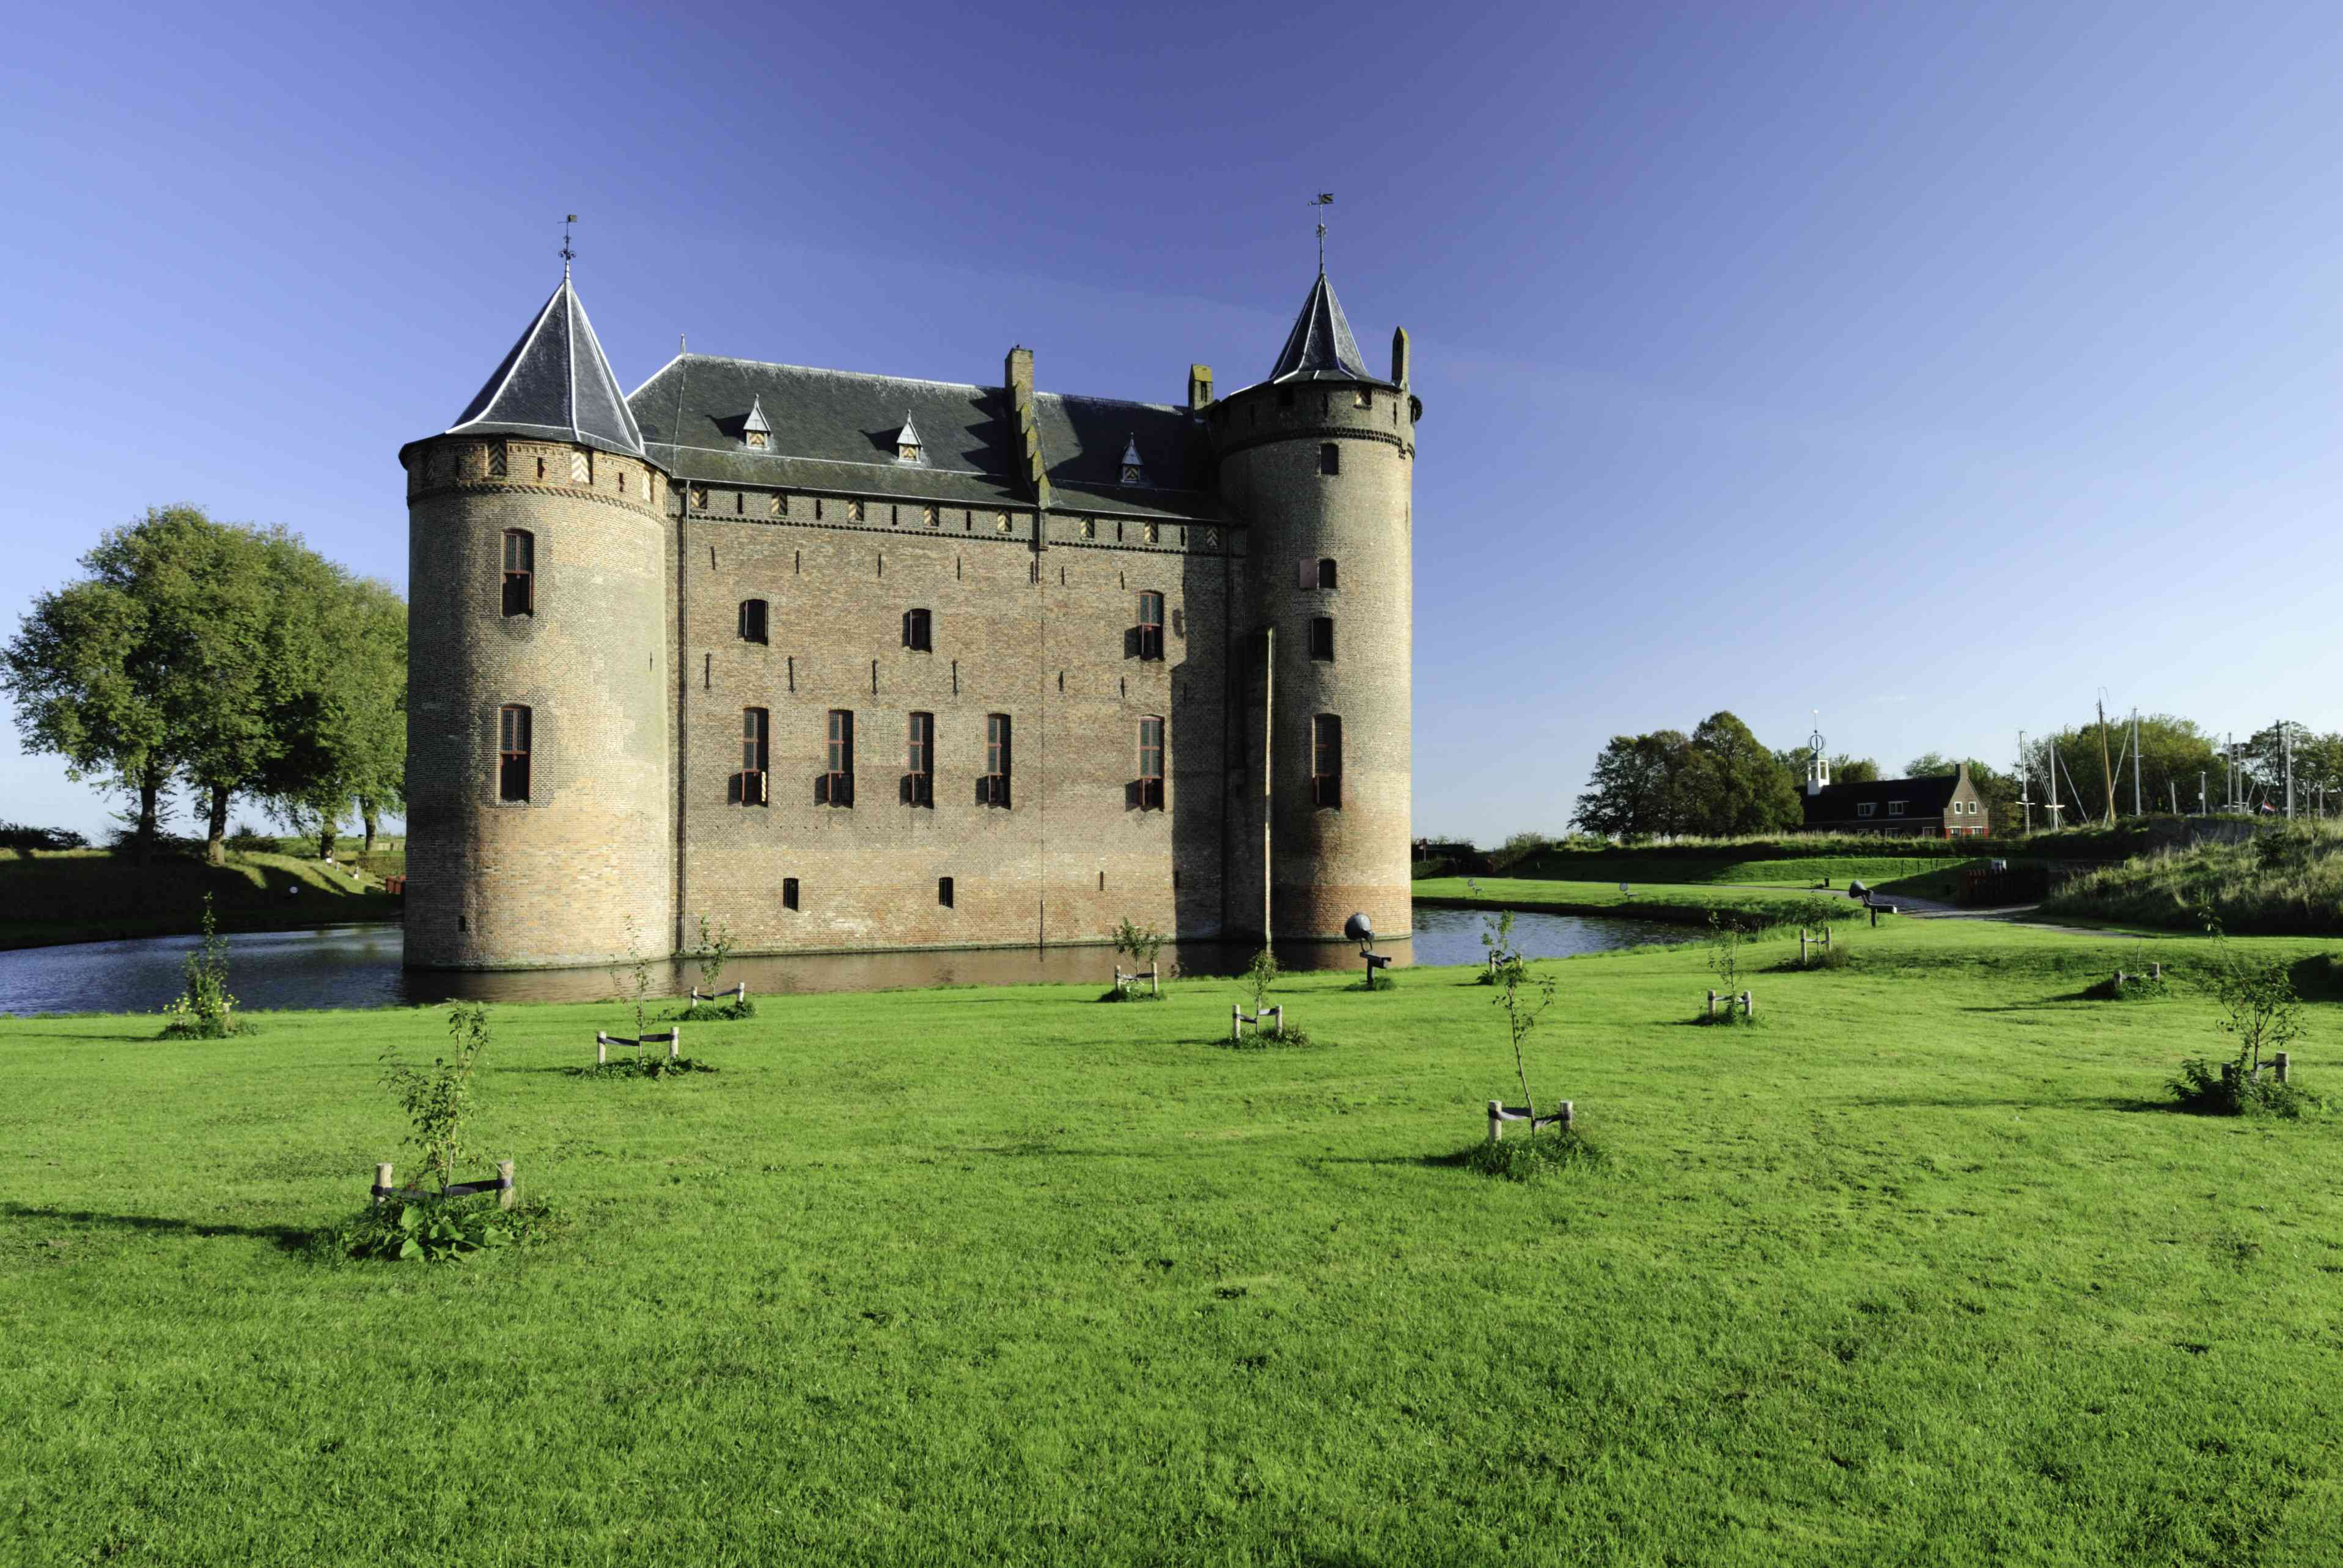 Medieval castle Muiderslot with a very green lawn around a moat.